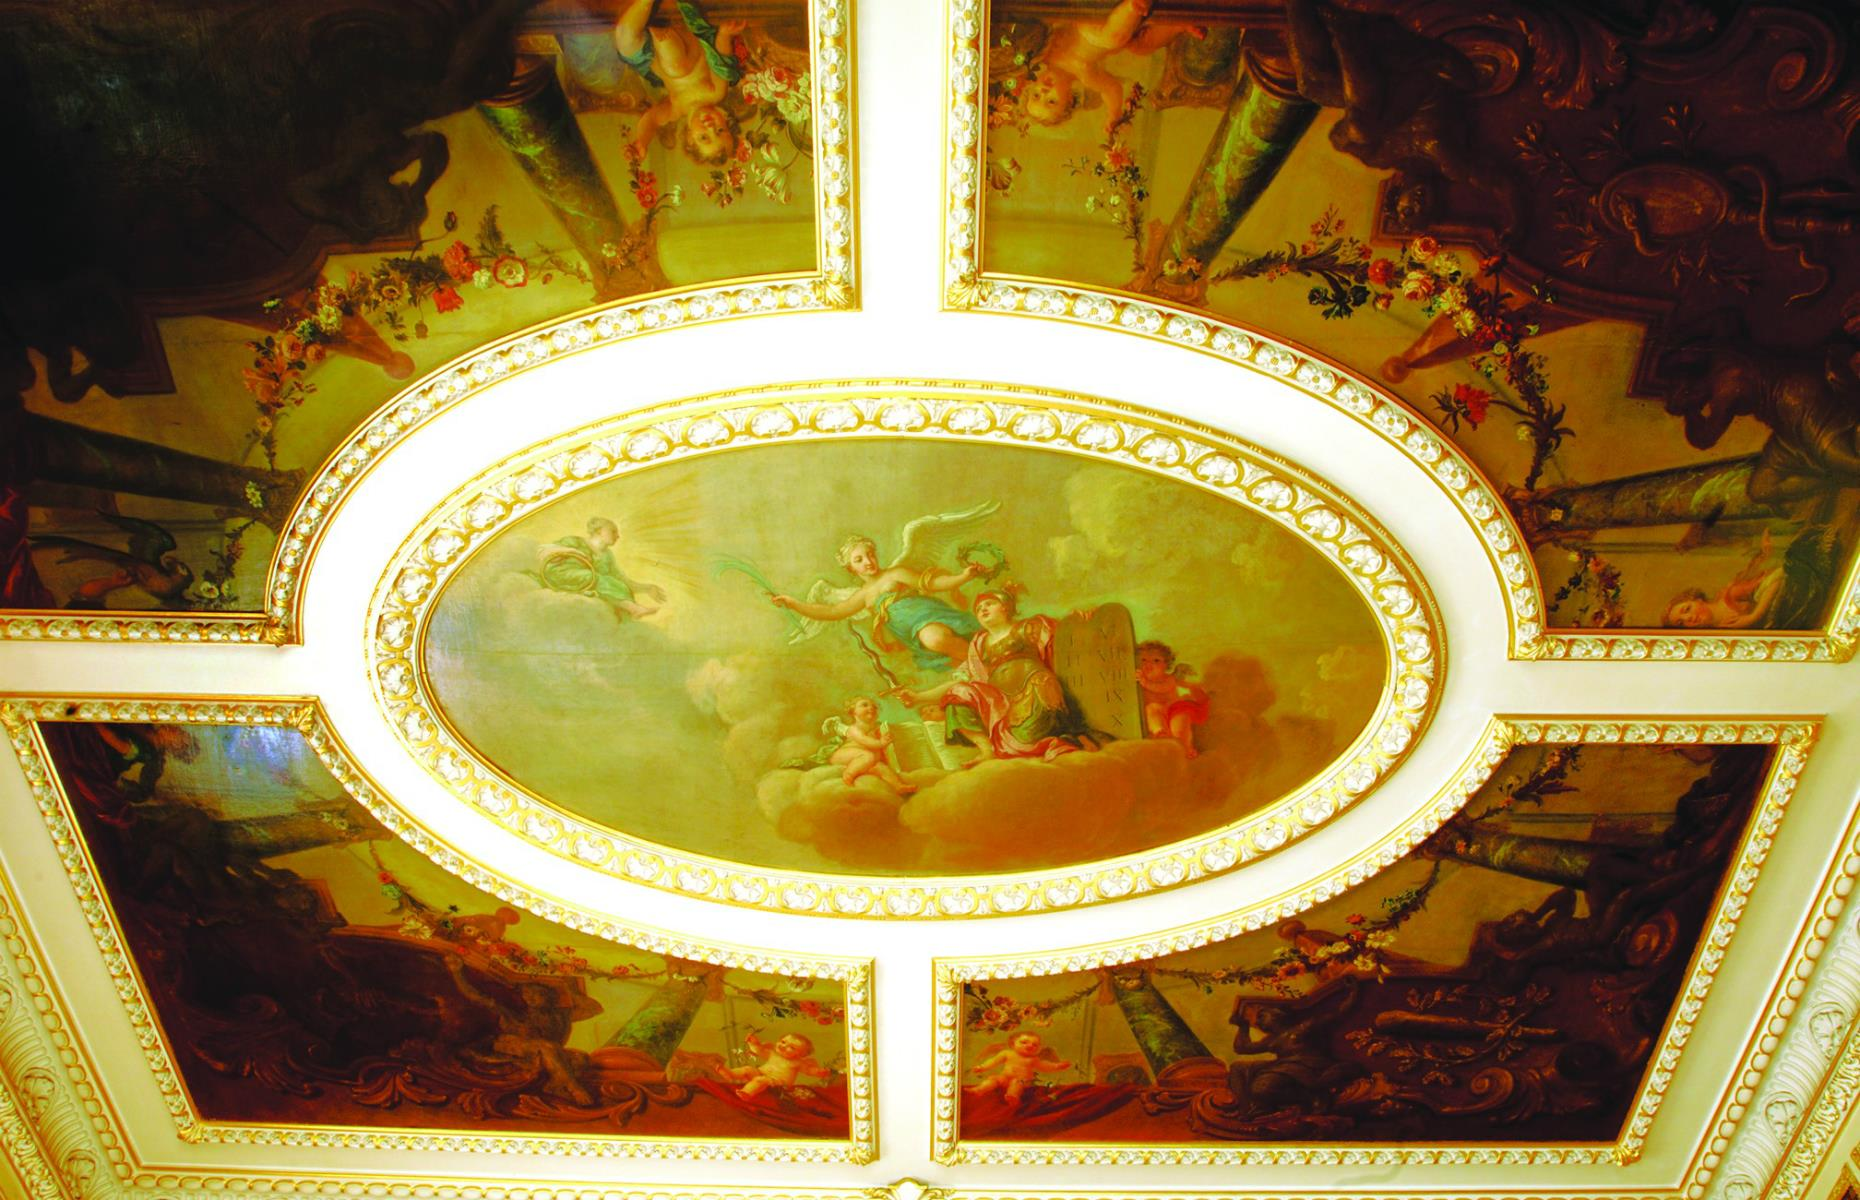 Slide 17 of 53: The castle's 200-plus rooms are filled with antiques and enchanting details, such as the frescoed ceiling in the Music Room. The incredibly detailed scenes, painted by Francis Hayman in 1740, depict Athena, goddess of many things including war, wisdom and the arts.